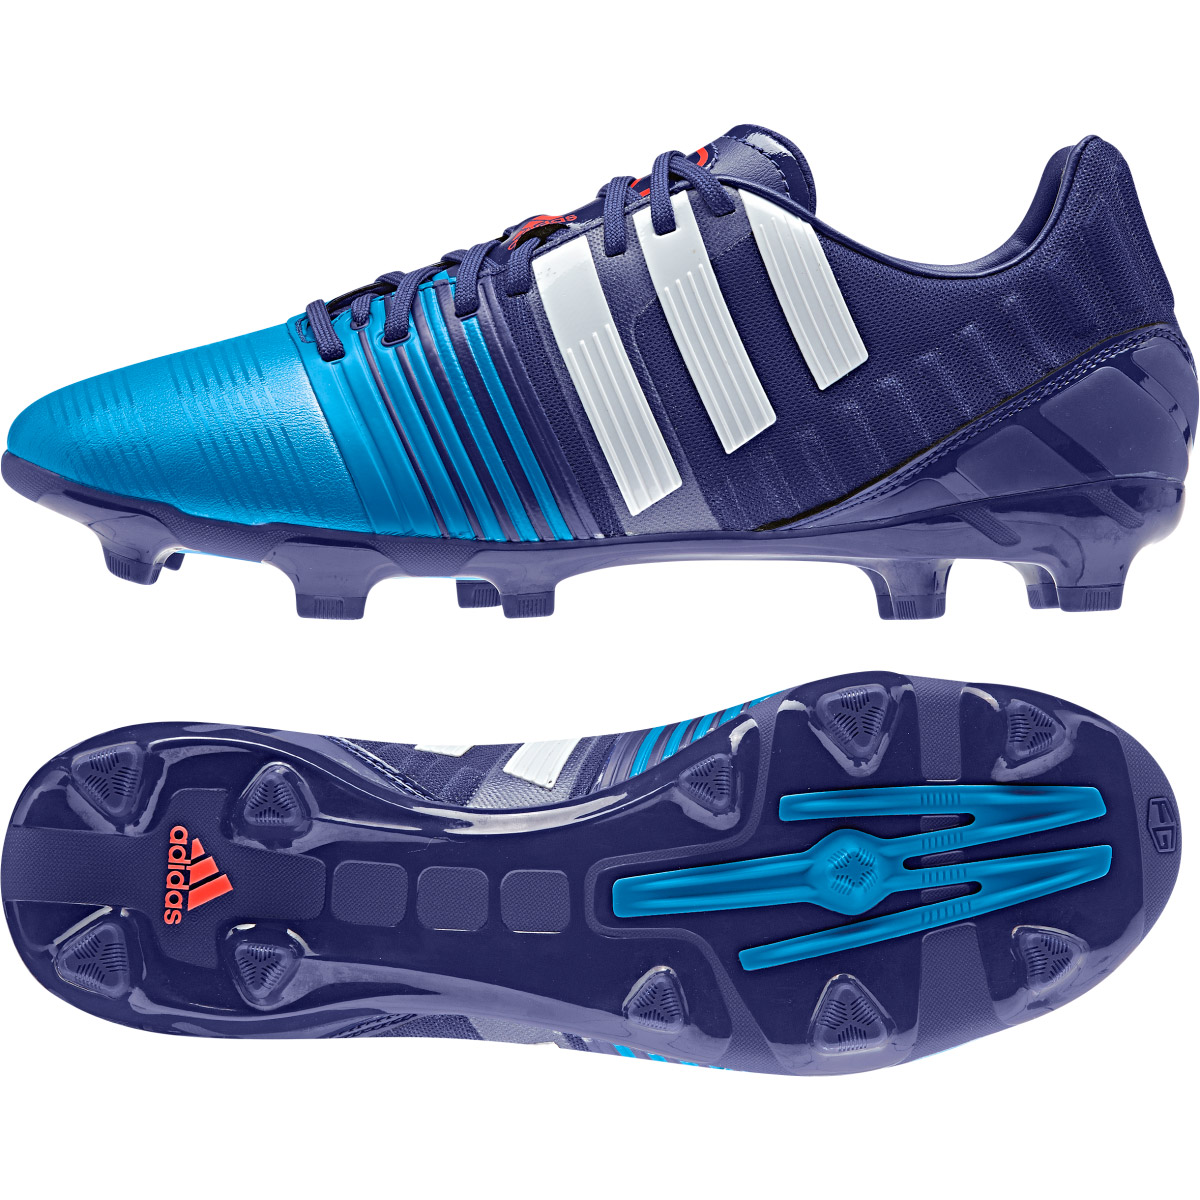 Adidas Nitrocharge 2.0 Firm Ground Football Boots Purple